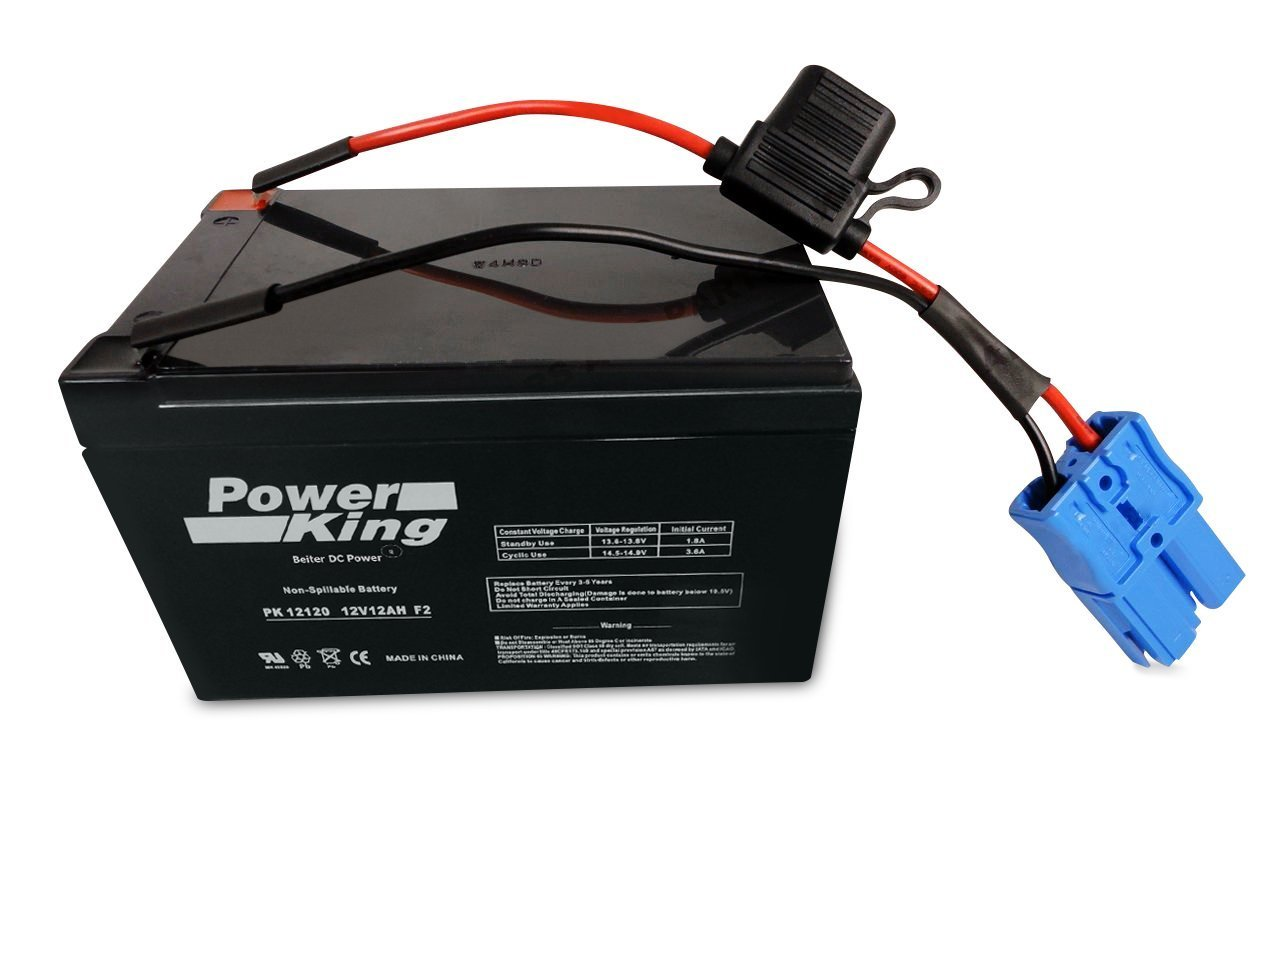 Kid Trax 12 Volt Replacement Battery 12V 12AH with Large Blue Plug Anderson Power On The Blue Plug Beiter DC Power